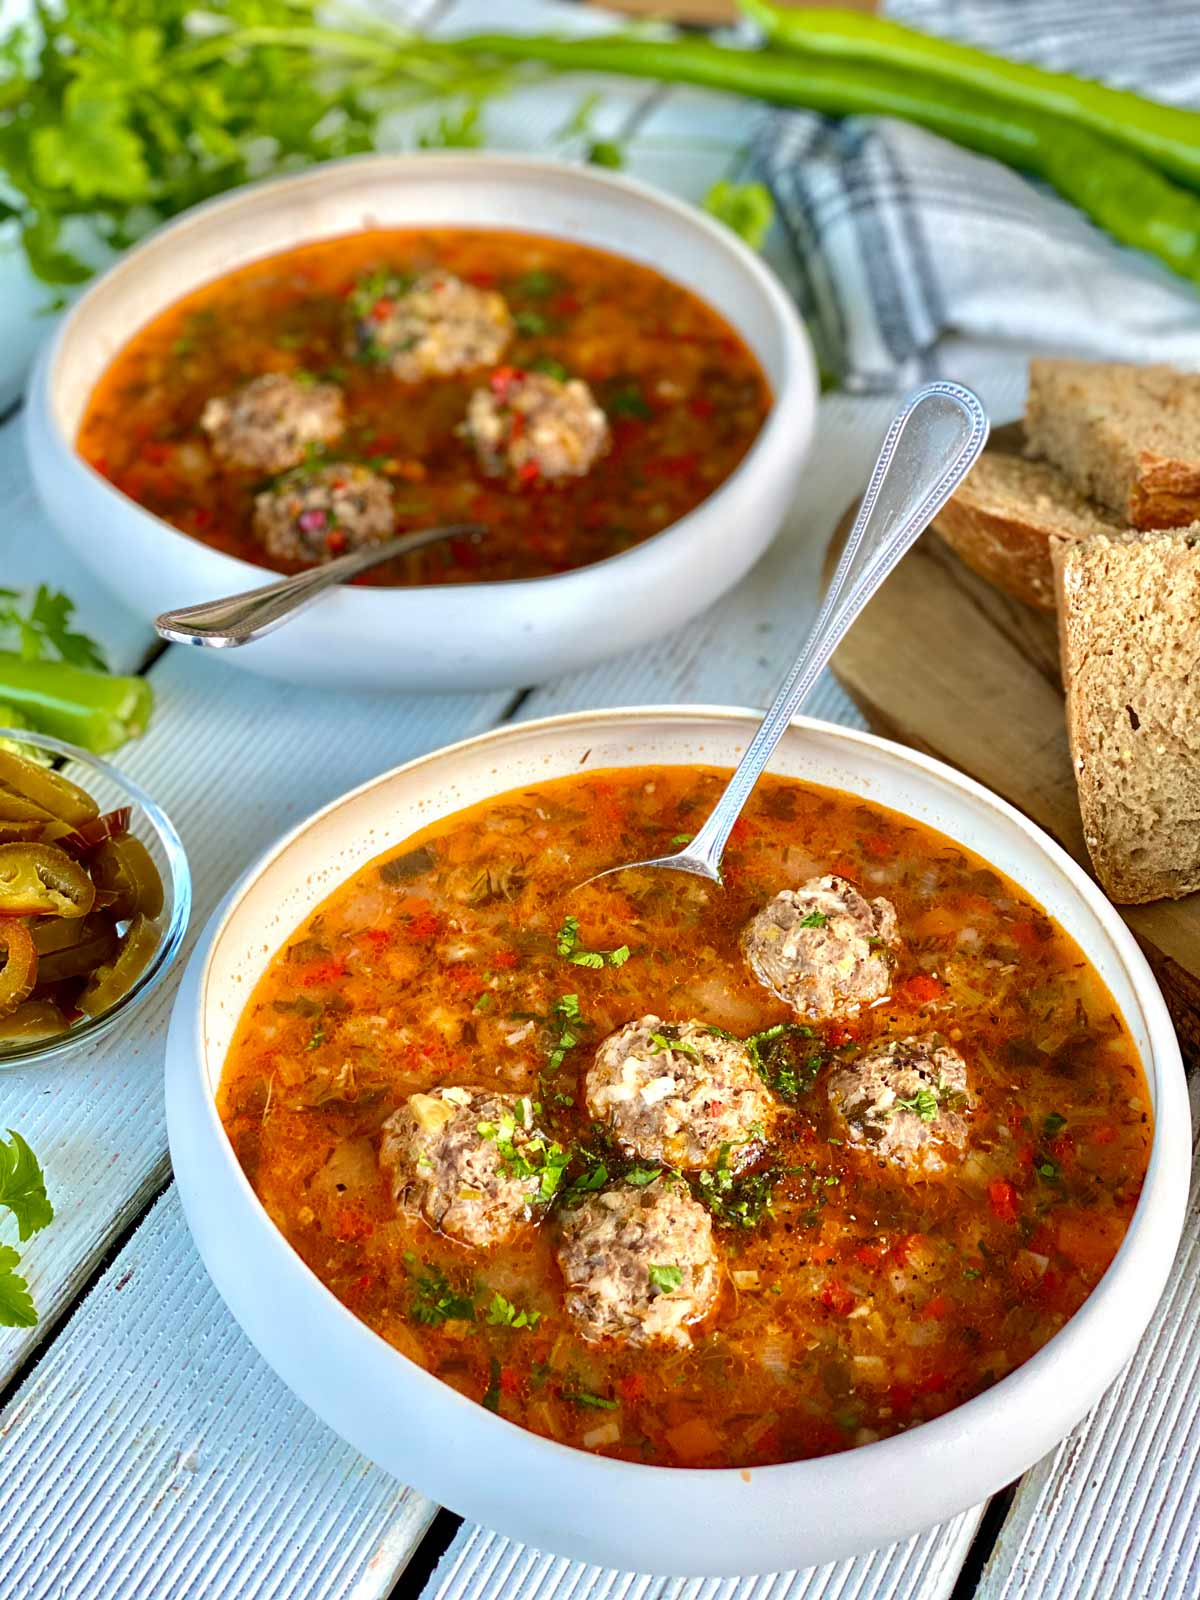 2 meatballs soup bowls, a glimpse of wholemeal bread slices on a chopping board on the right a kitchen towel and green peppers and fresh herbs in the far end